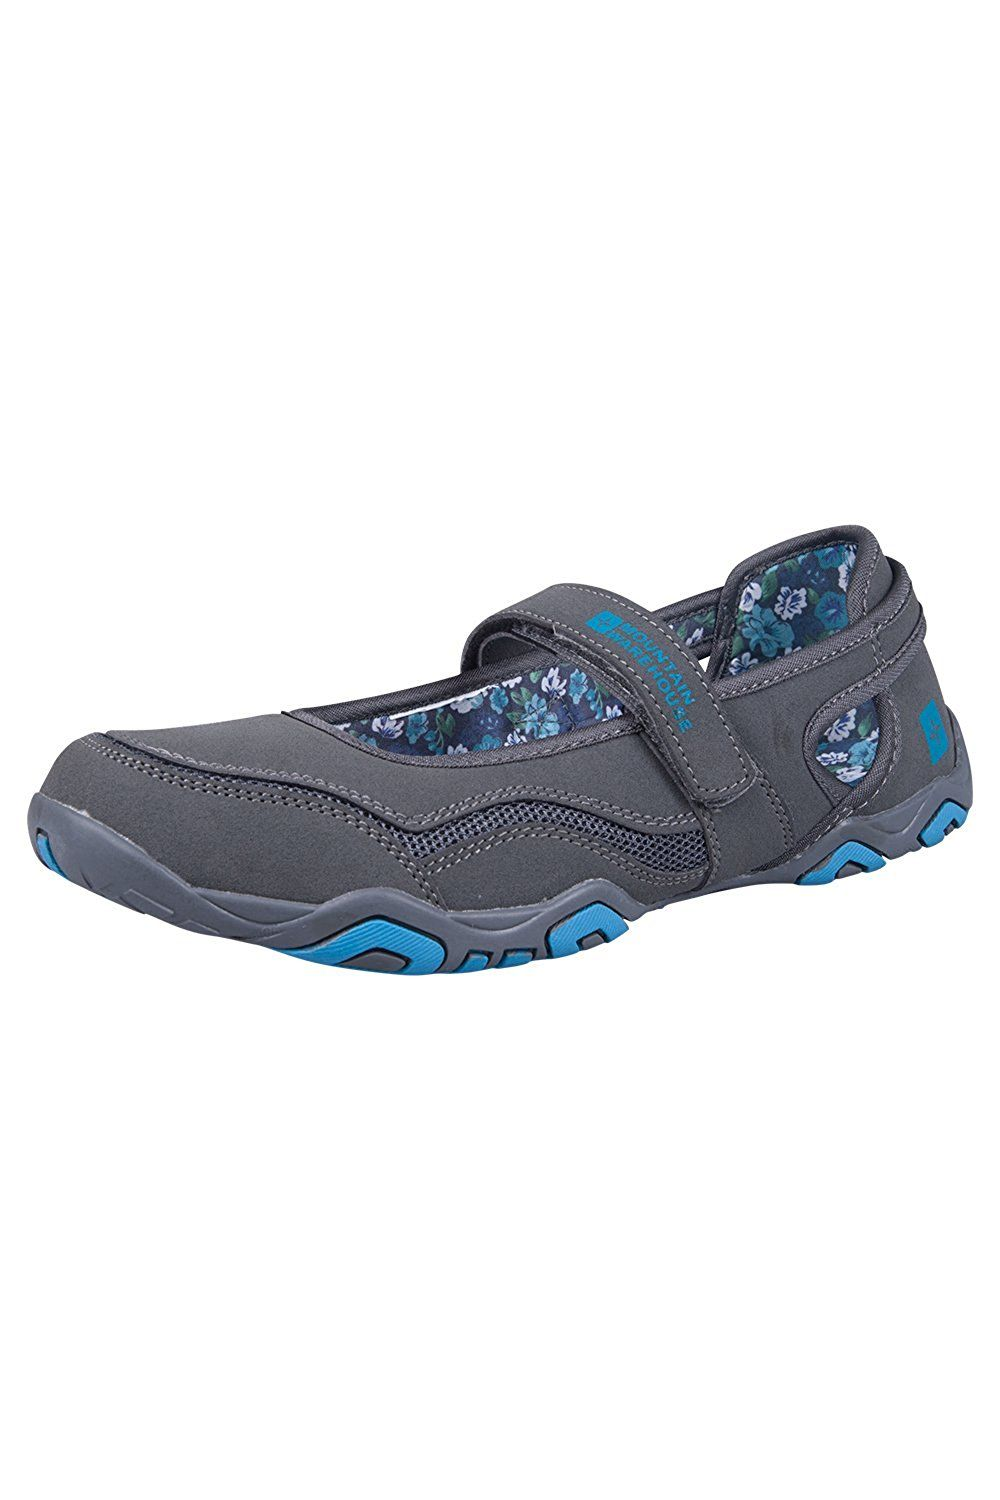 a1495653f41 Mountain Warehouse Magda Womens Walking Casual Travelling Flat Shoes ...